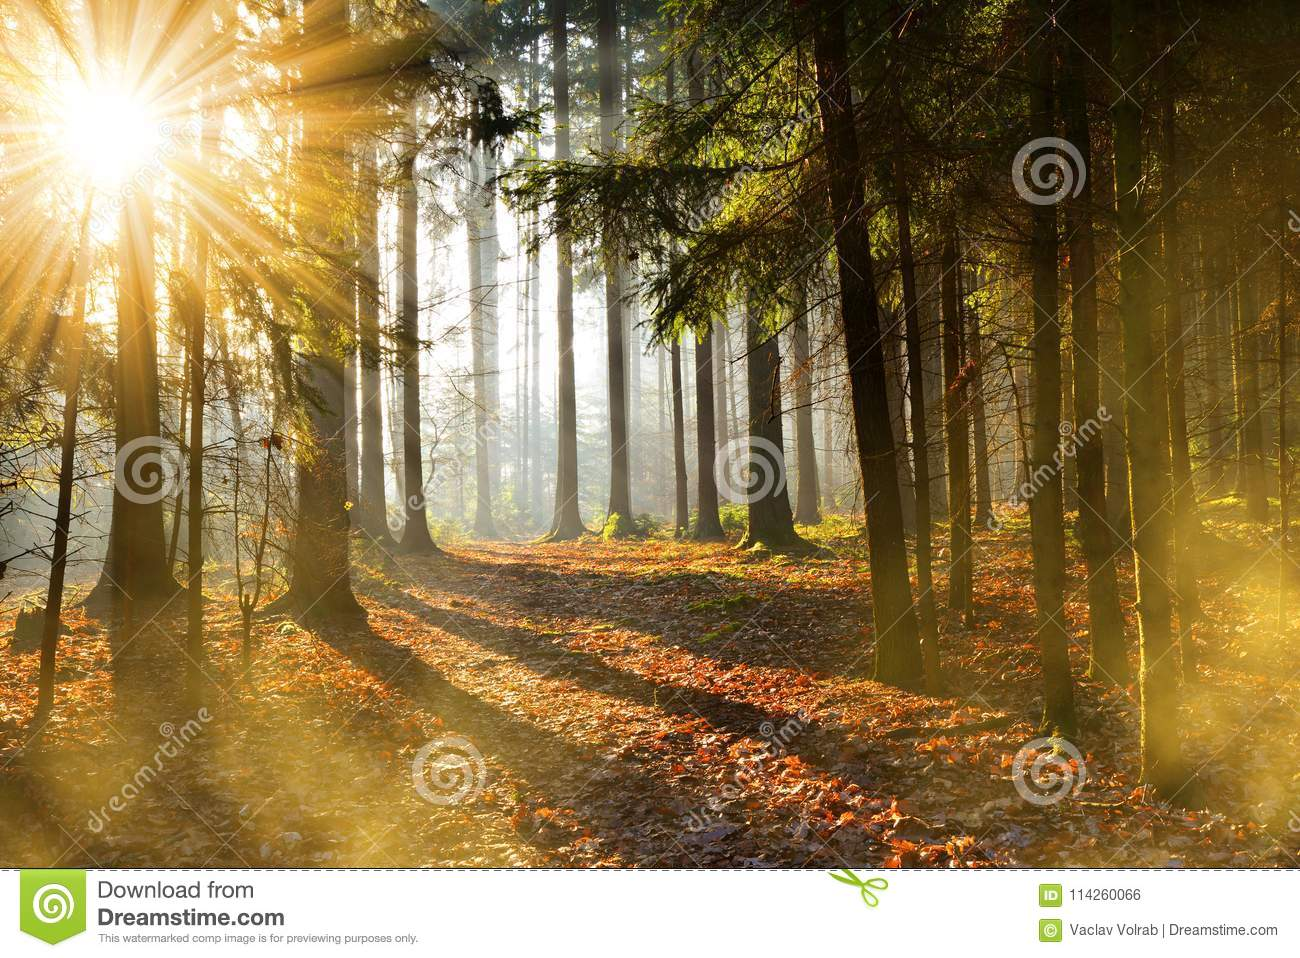 Beautiful morning scene in the forest with sun rays.